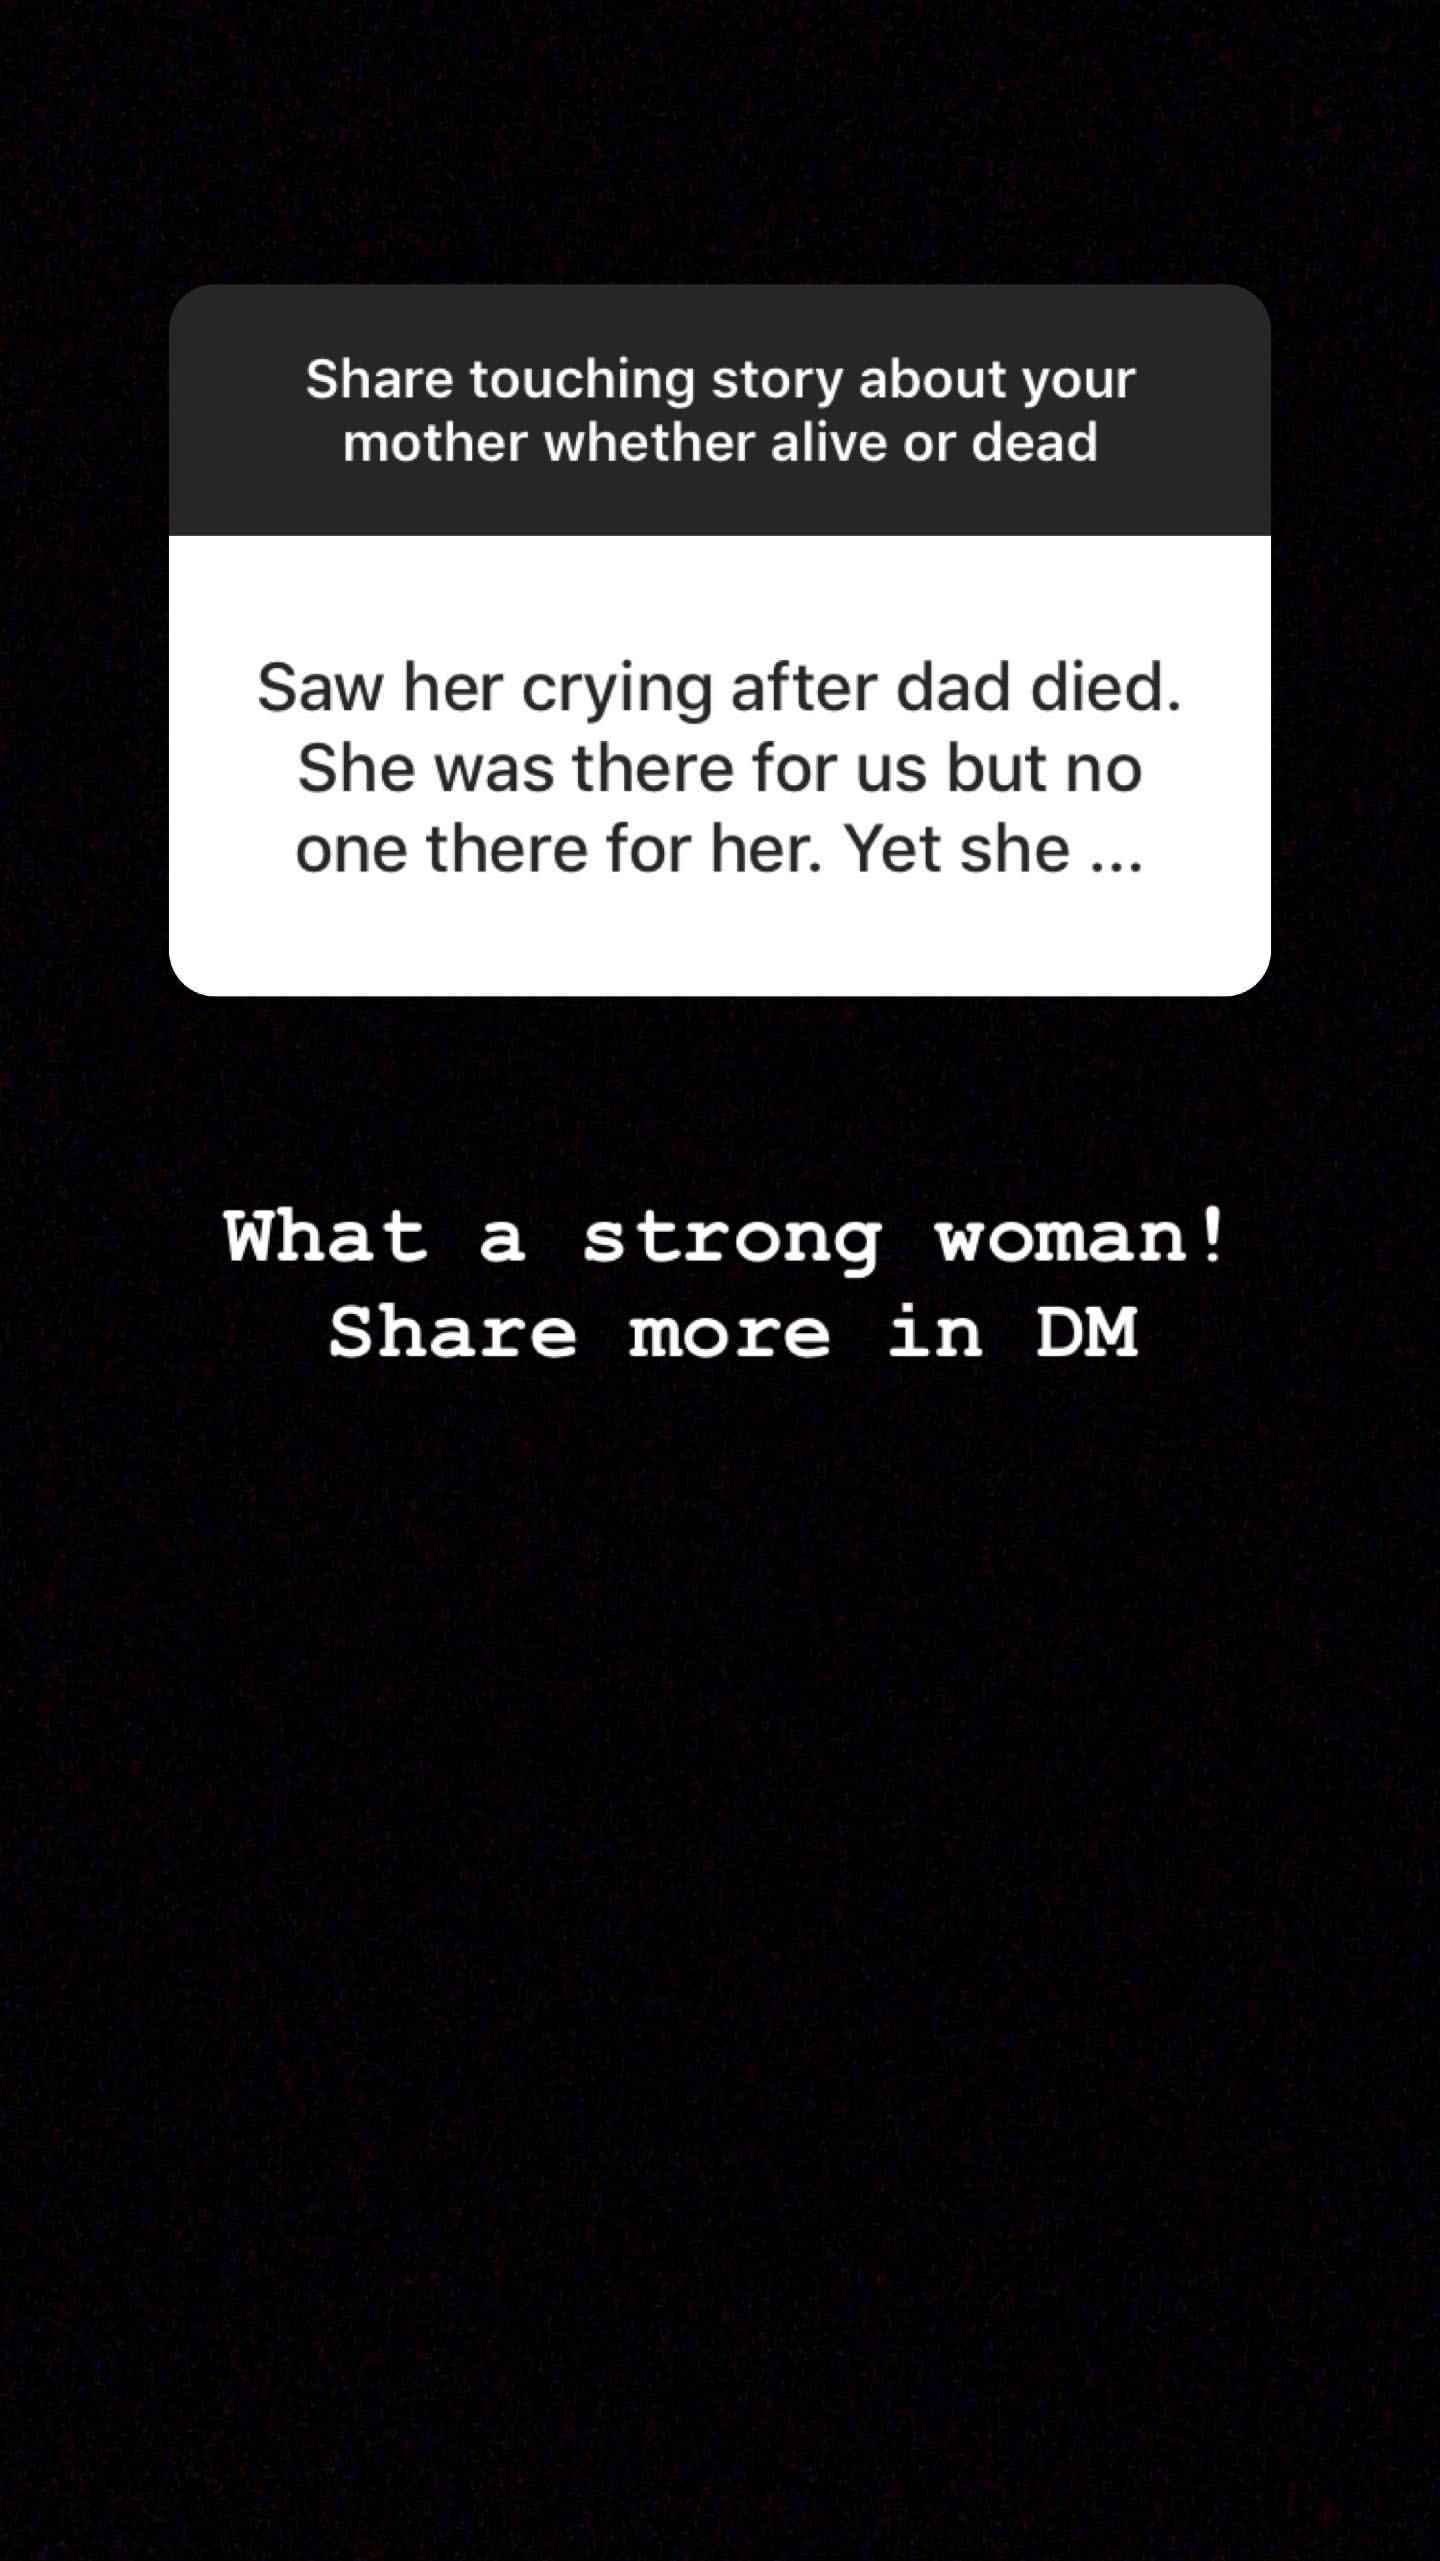 58853020 700537620402696 276839409857127330 n - Tear-jerking! Mpasho fans break down sharing touching stories about their mothers